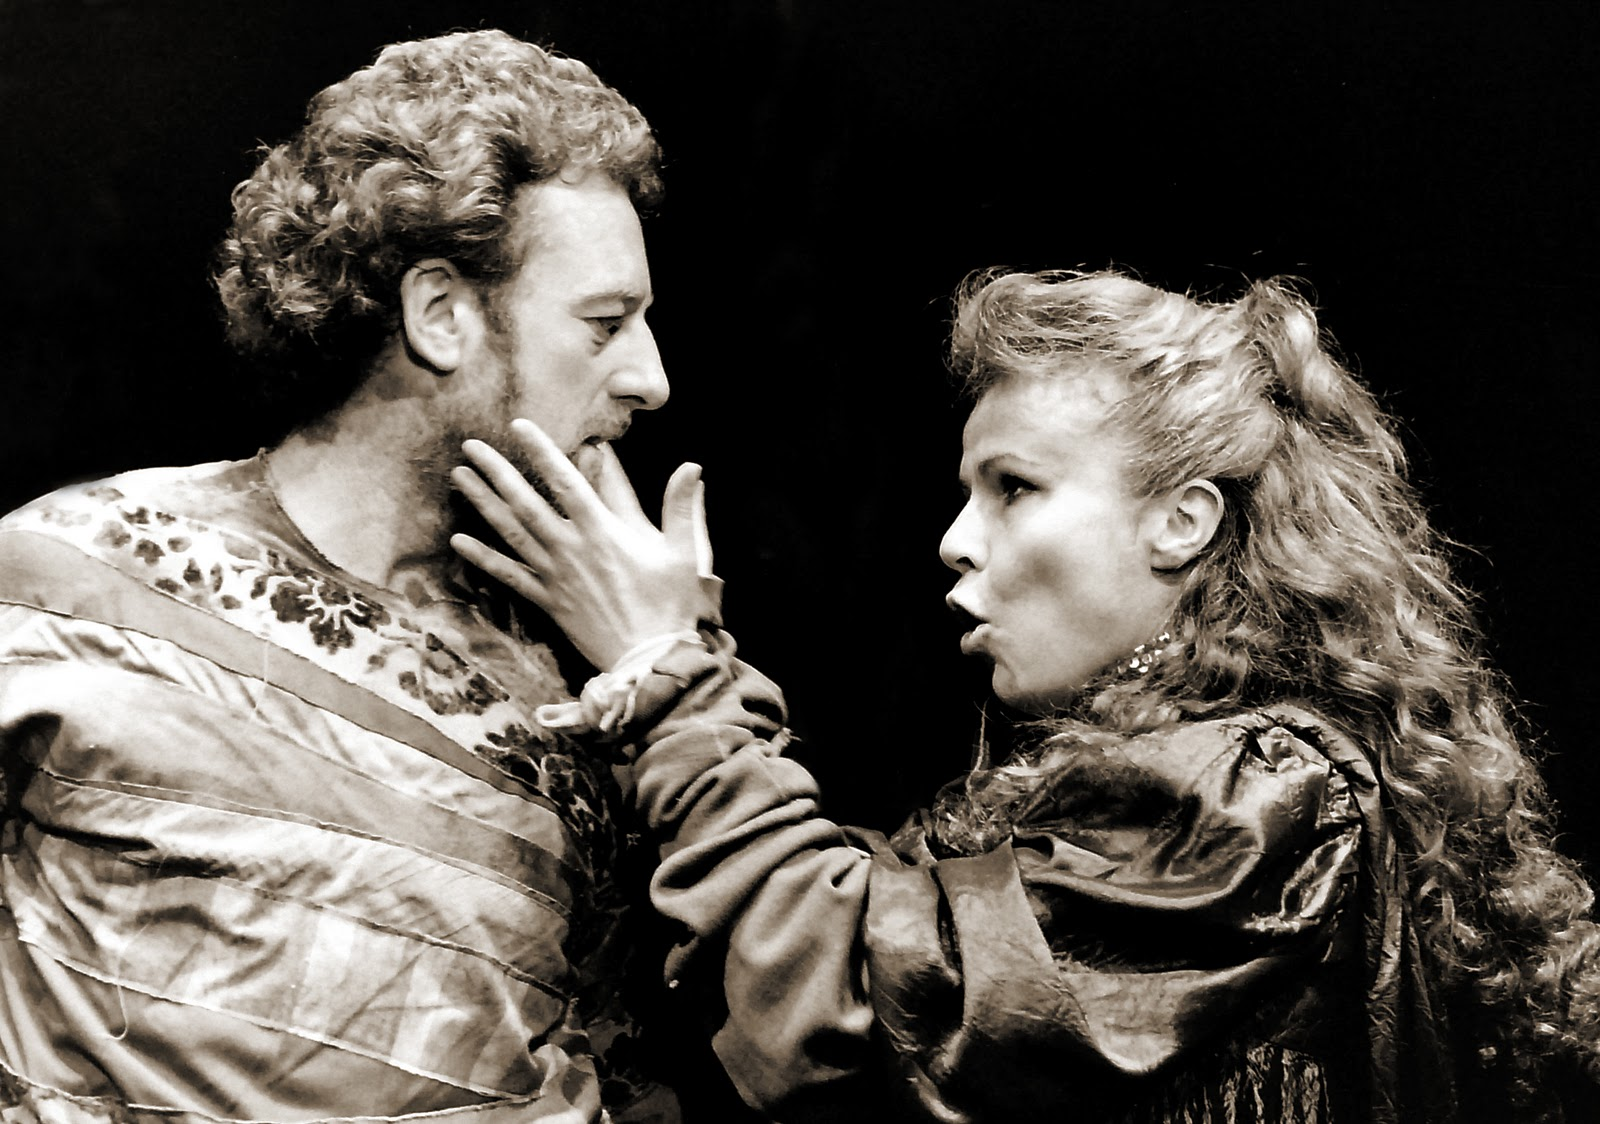 macbeth and lady macbeth s actions and Macbeth's wife is one of the most powerful female characters in literature unlike  her husband, she lacks all humanity, as we see well in her opening scene,.